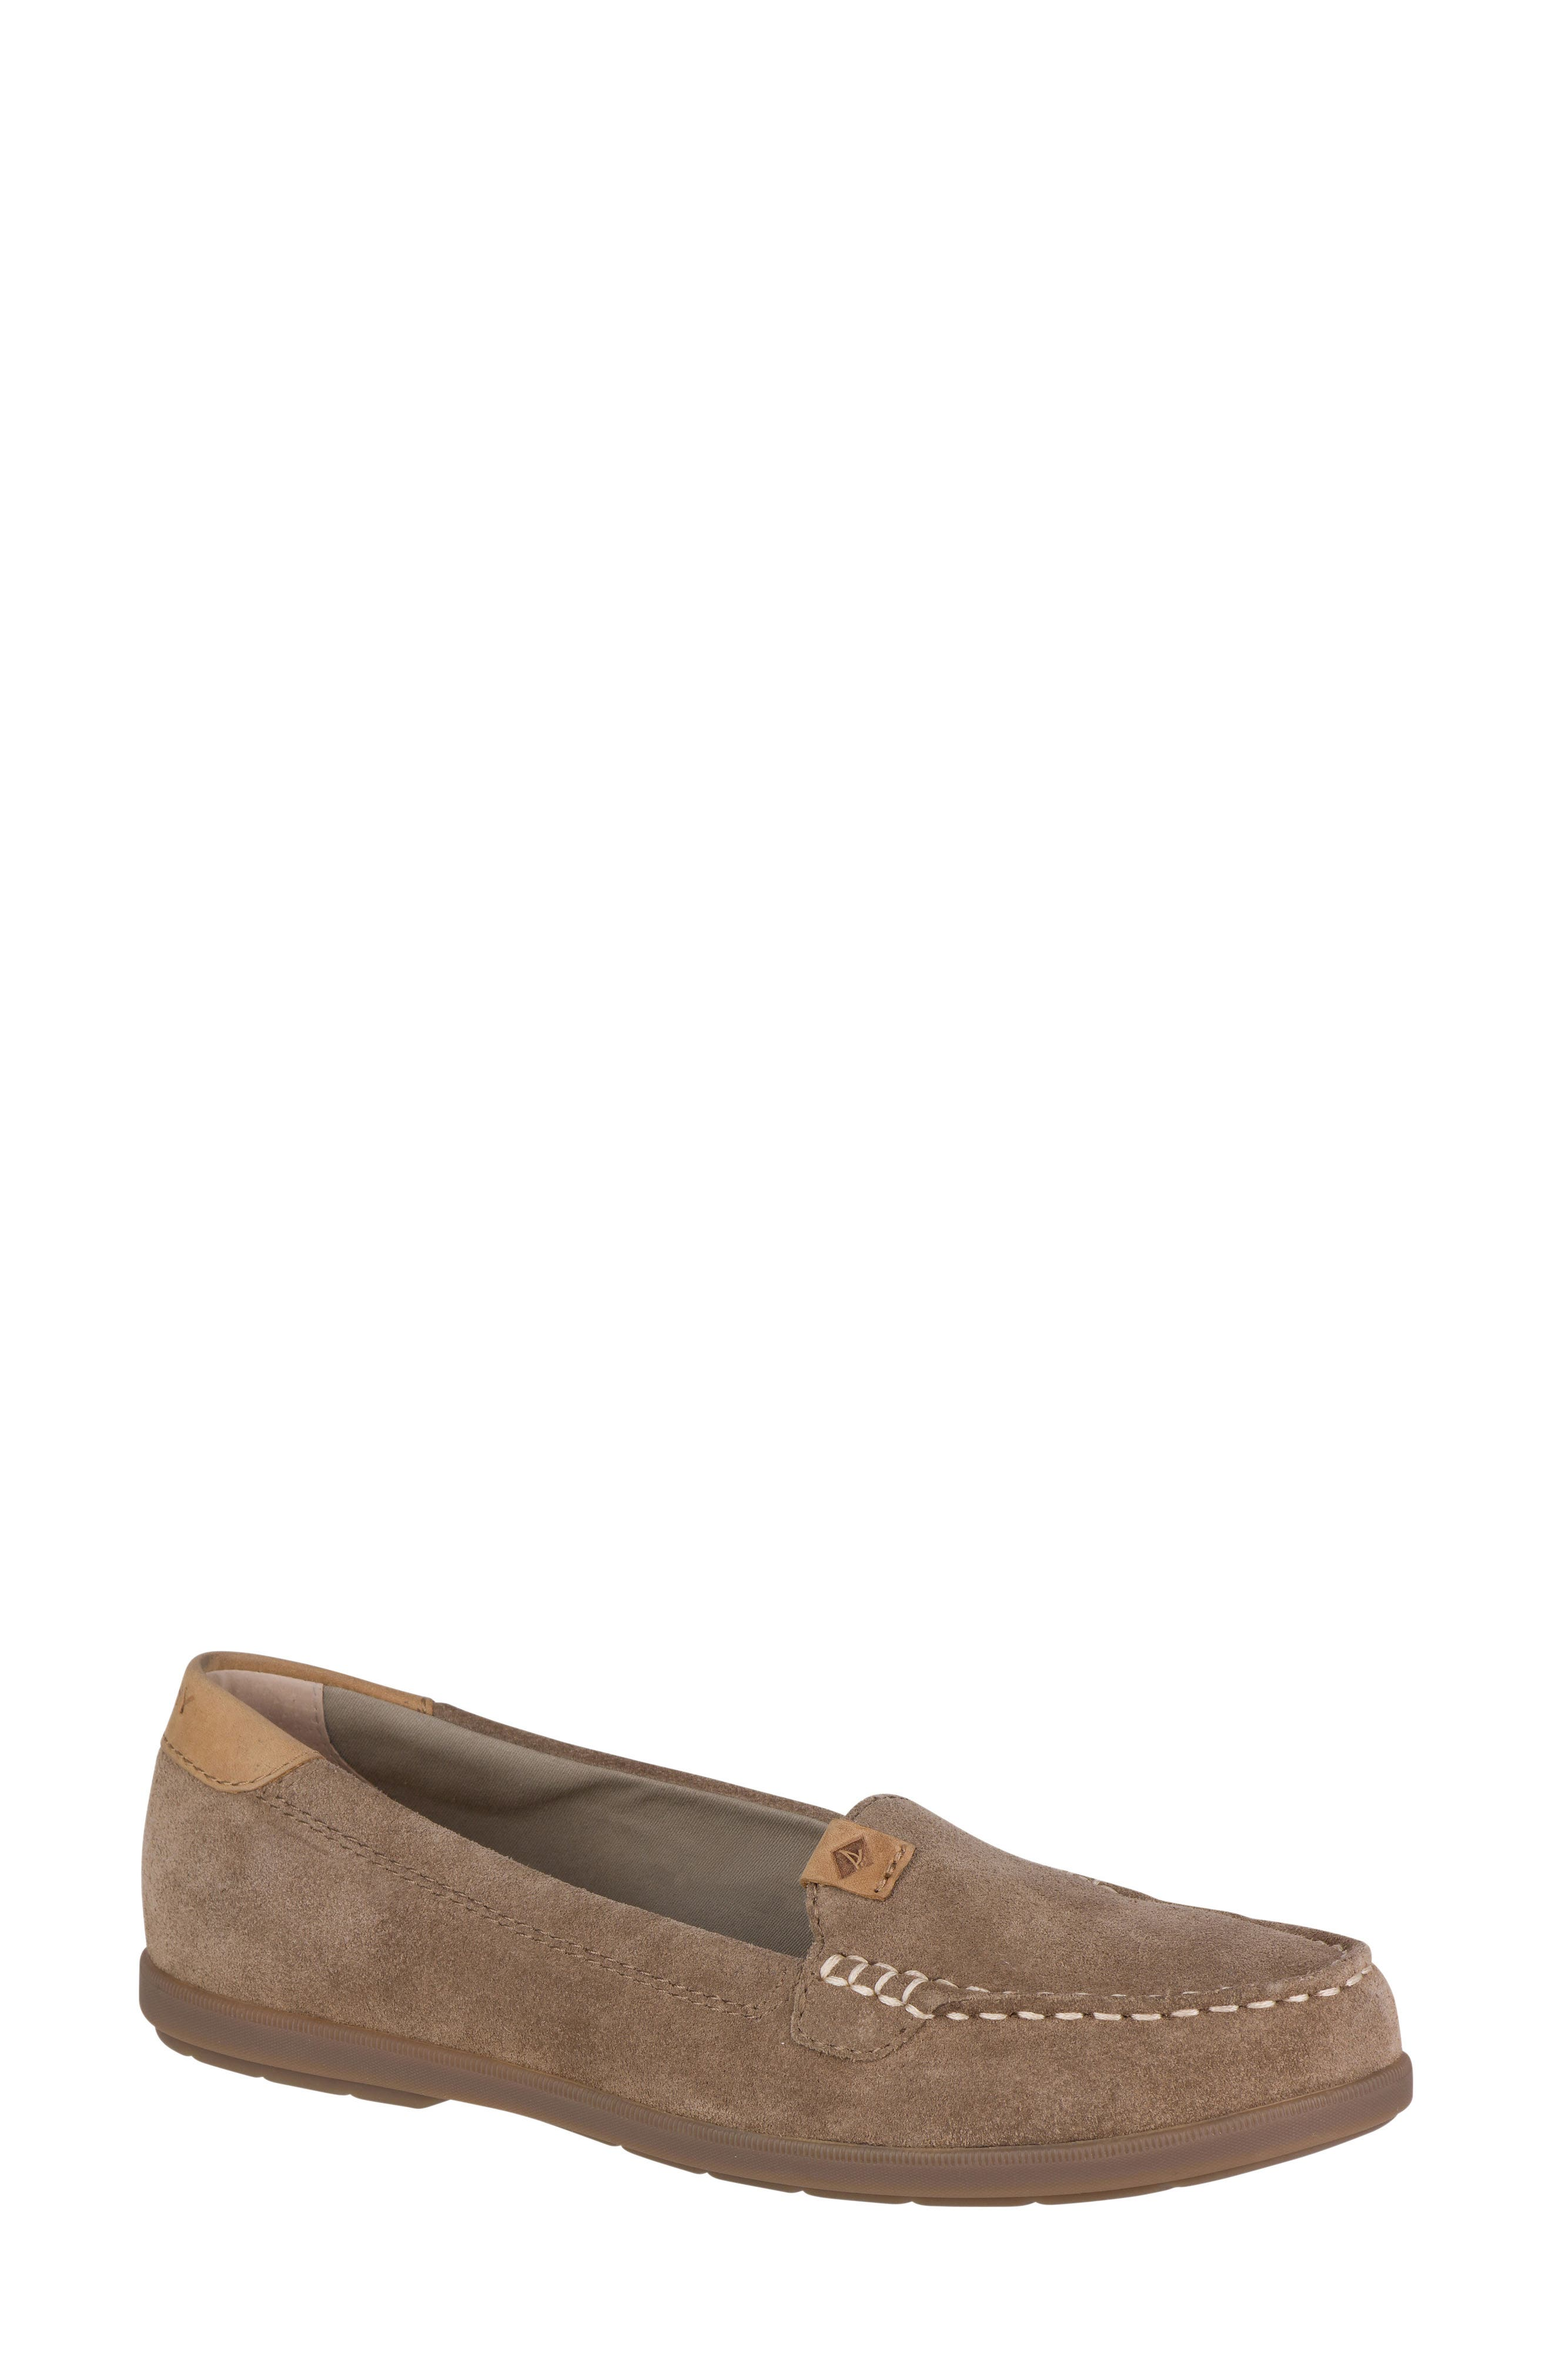 Main Image - Sperry Coil Mia Loafer (Women)